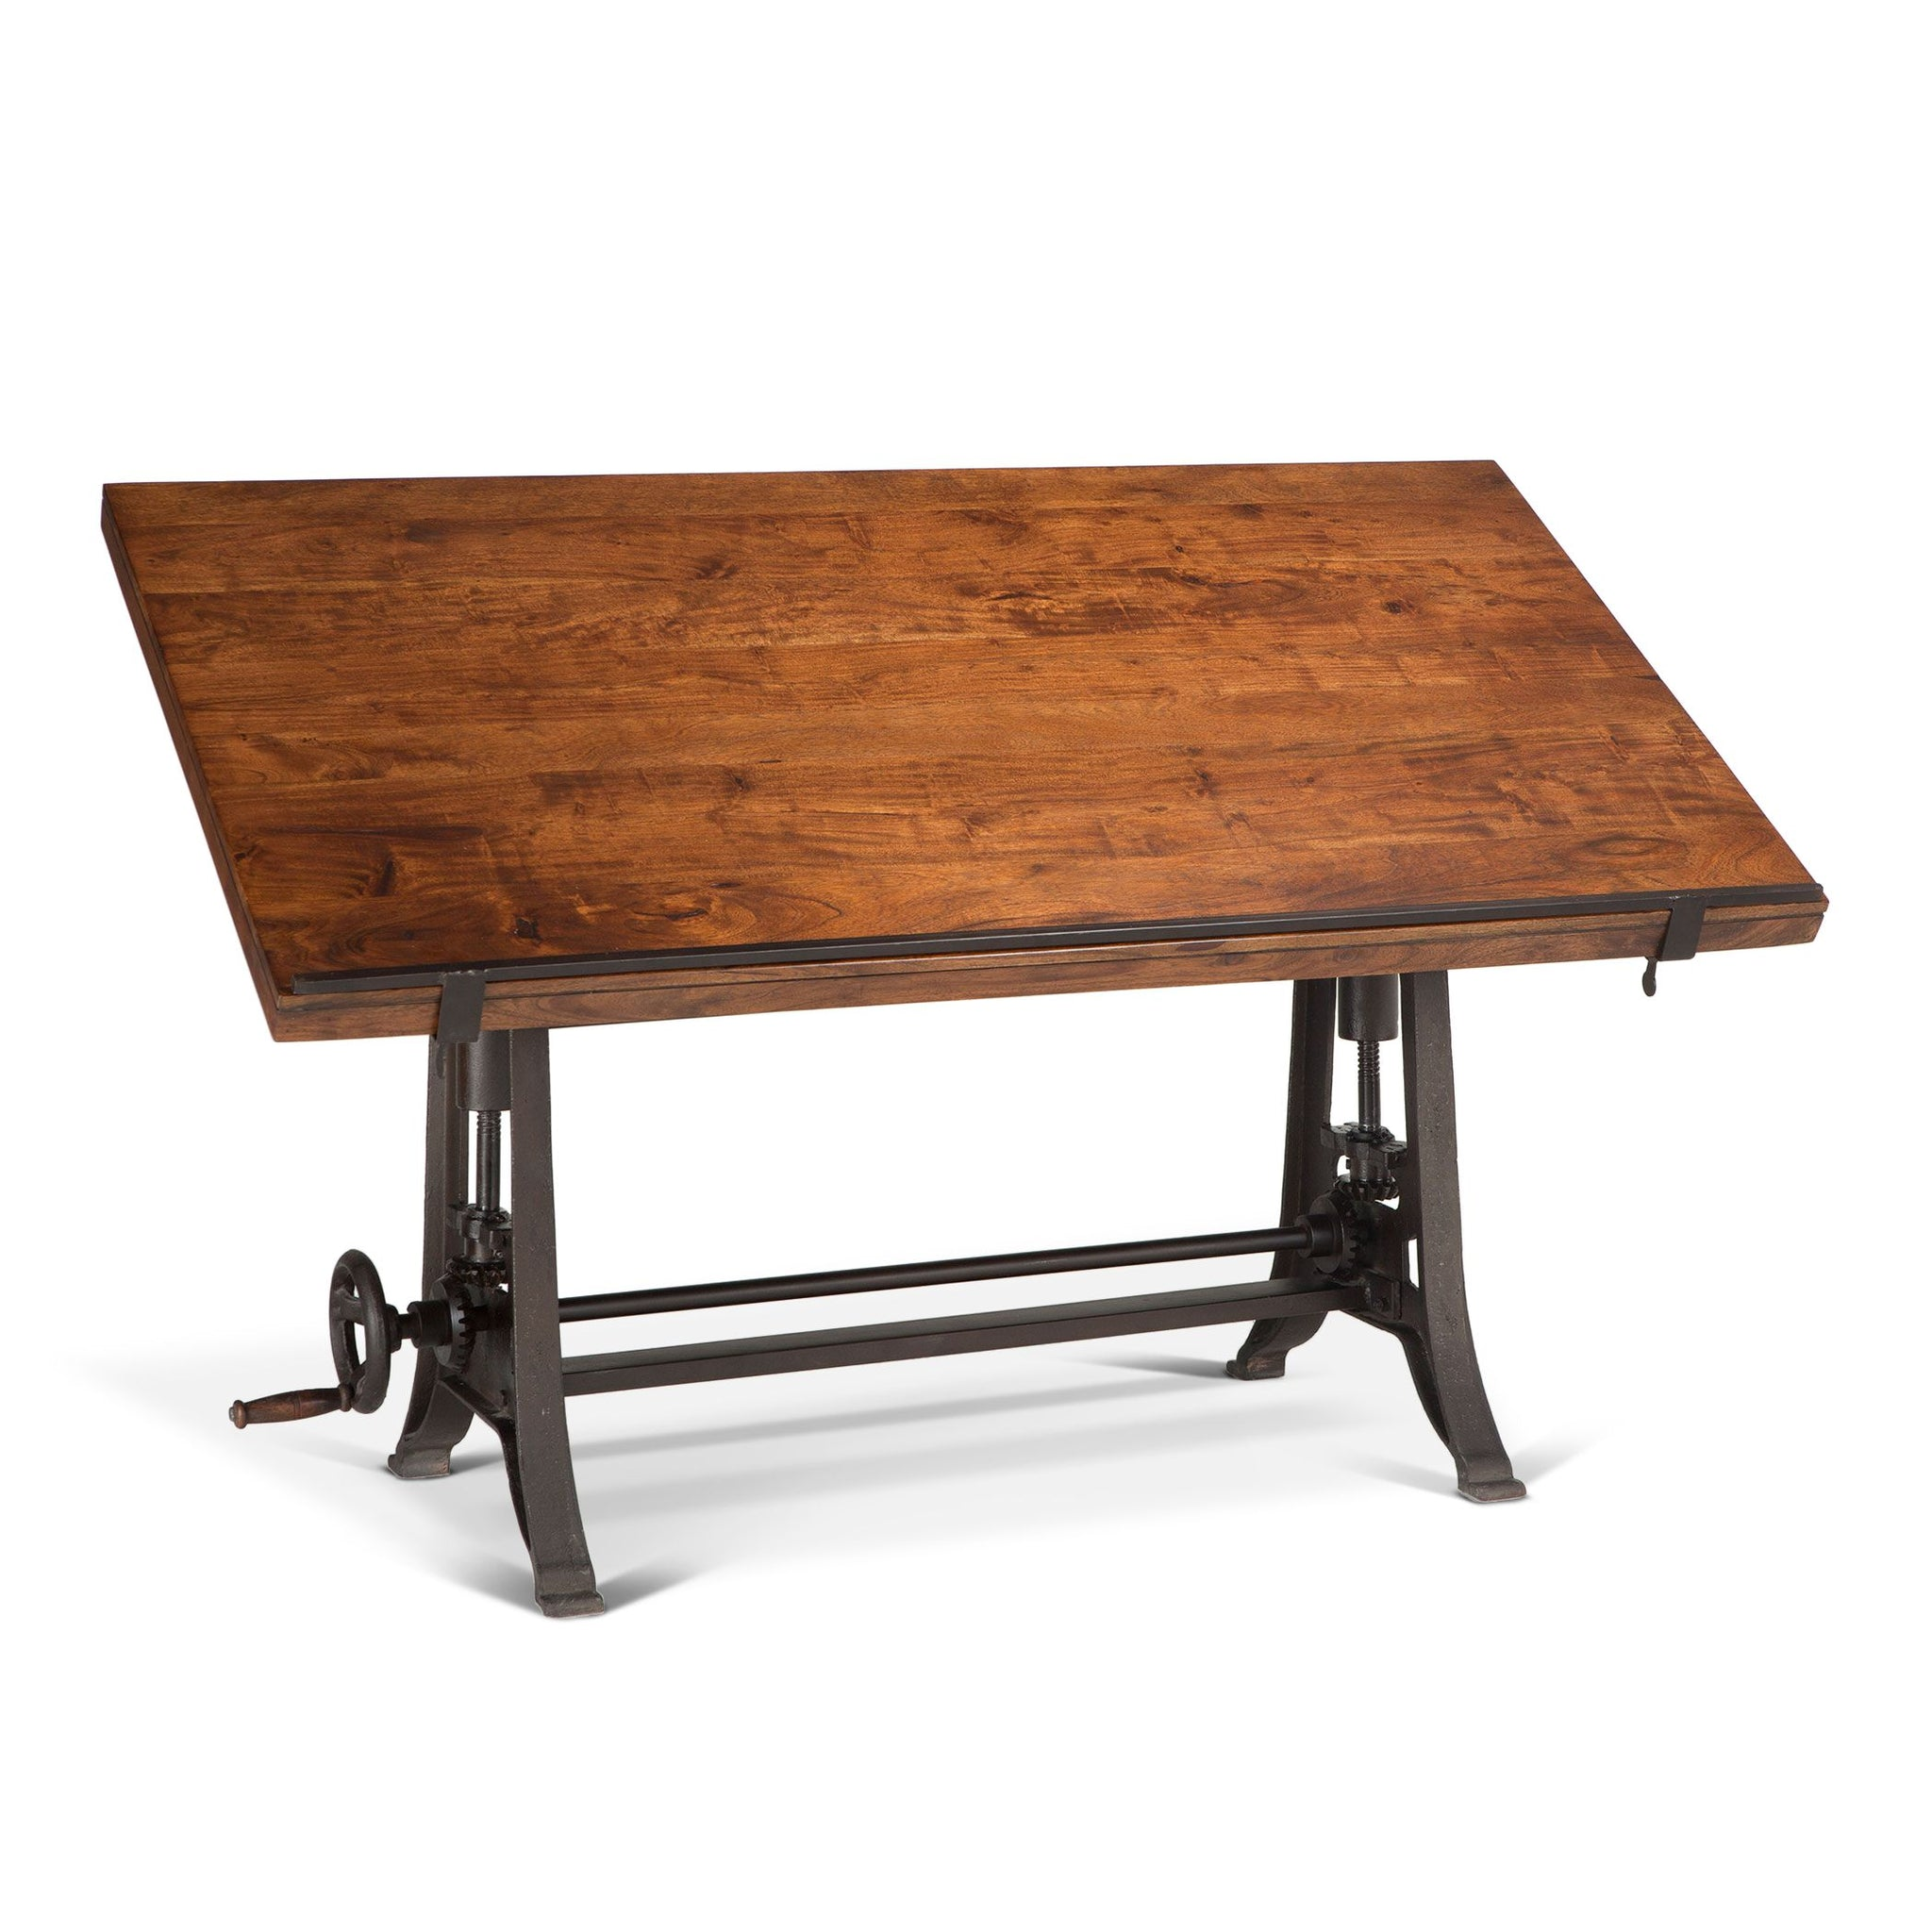 Drafting Rustic Industrial Iron Desk